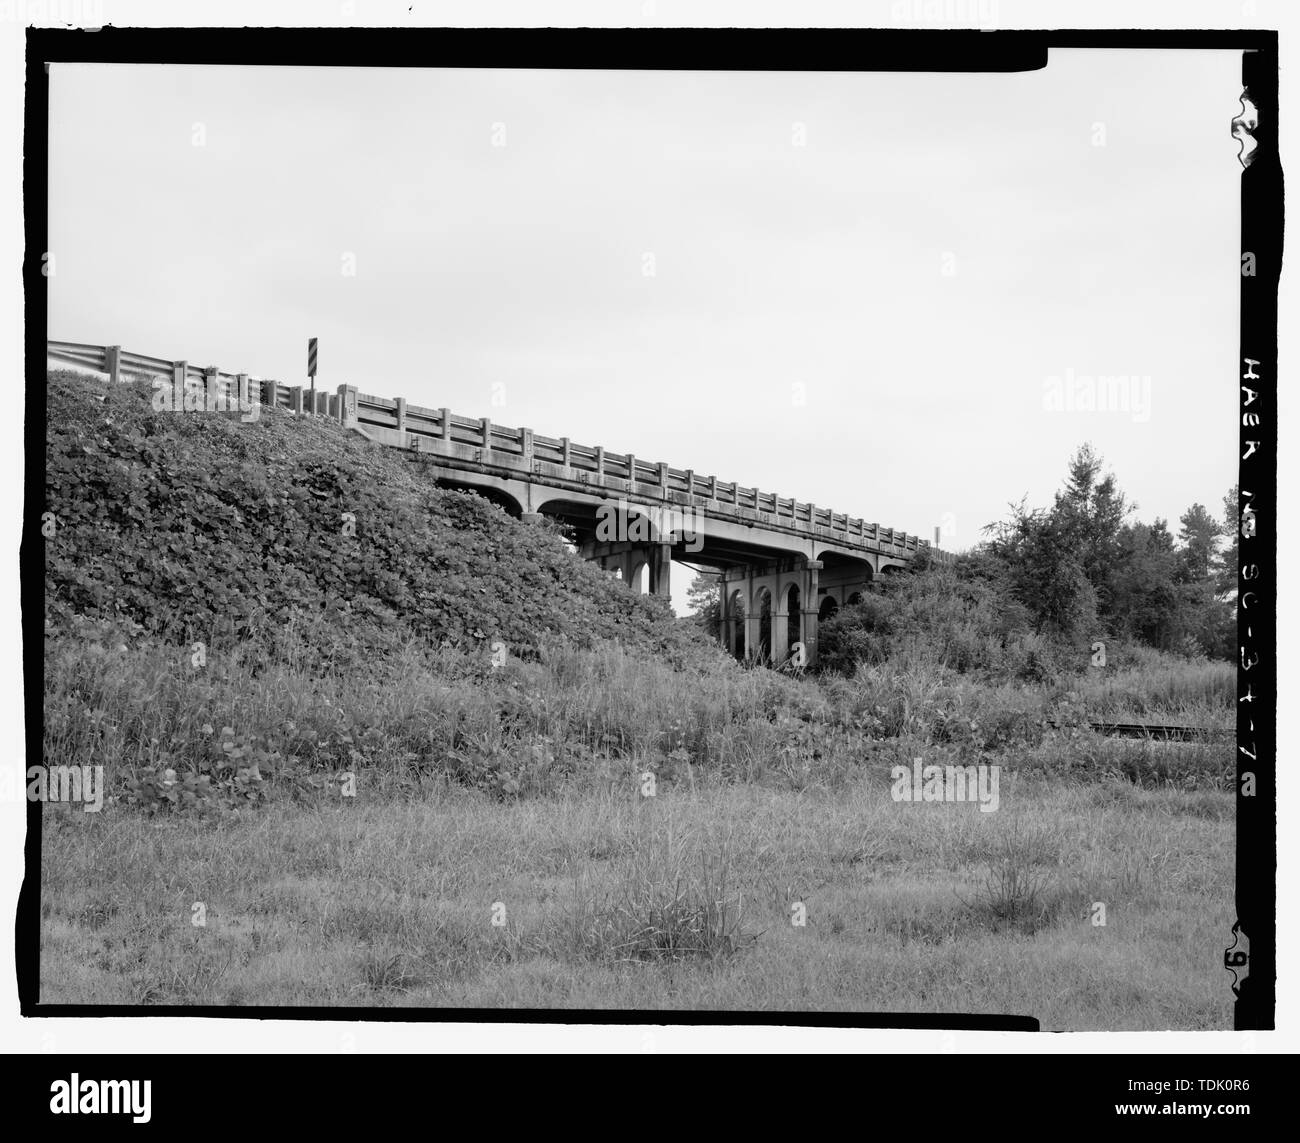 OBLIQUE VIEW OF NORTHWEST EMBANKMENT AND BRIDGE, FACING SOUTH-SOUTHEAST - CSX Railroad Bridge (U.S. Route 76), U.S. Route 76 spanning CSX Railroad, Jalapa, Newberry County, SC; South Carolina State Highway Department; Cherokee Construction Company; South Carolina Department of Transportation; Pennell, J Roy; Moorefield, Charles H; Anderson, N S; Barnwell, Joseph W, Jr; Harwell, A; McGowan, Samuel; Sawyer, Ben M; Gooding, W J; C. N. and L. Railroad; CSX Railroad; New South Associates, contractor; Calloway, Deborah, transmitter - Stock Image